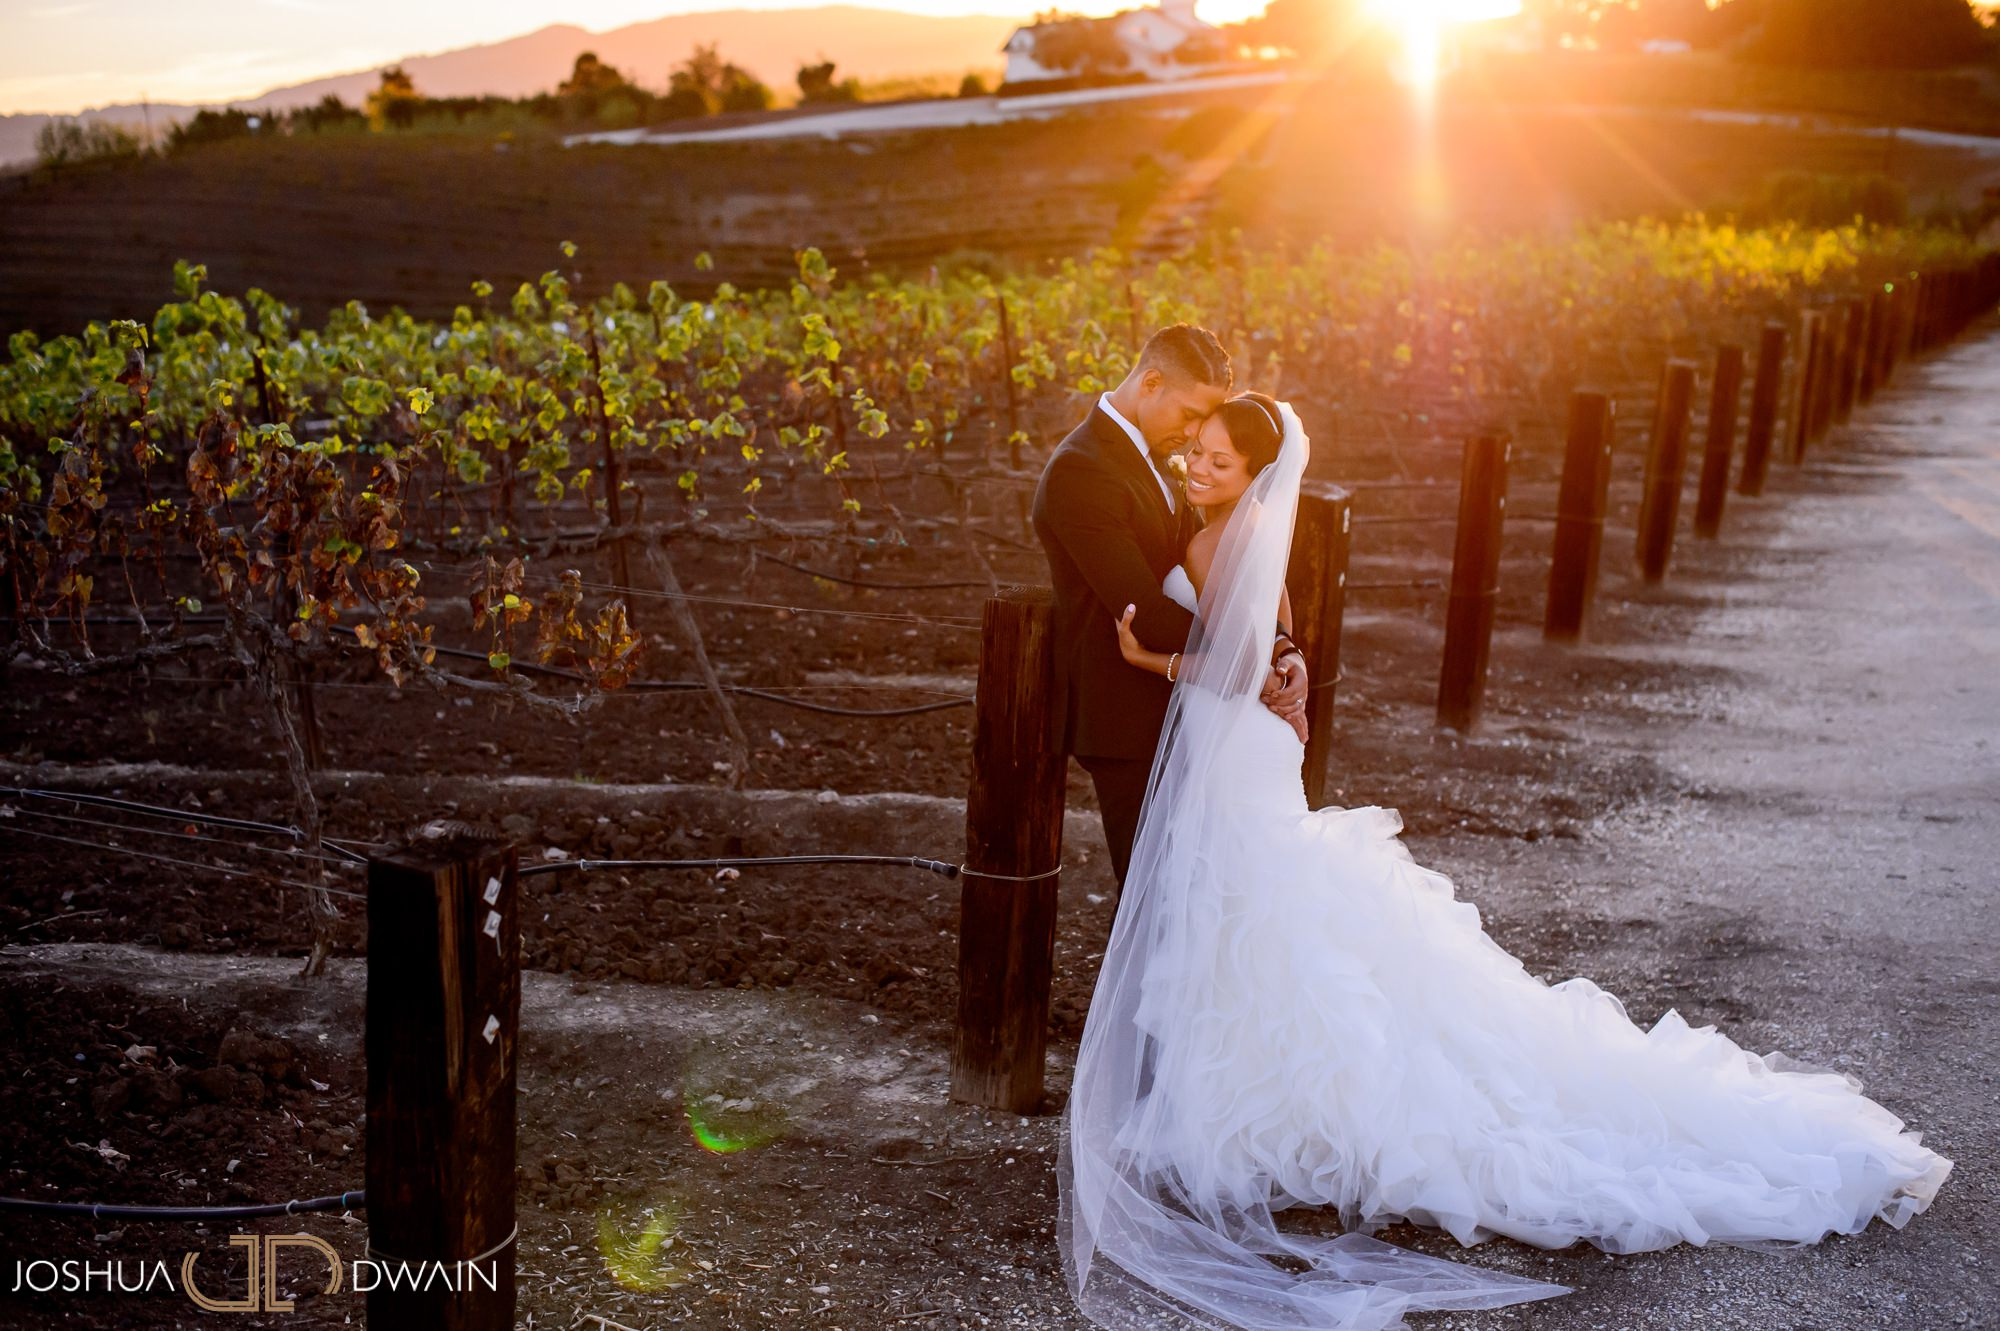 briana-donovan-26-leal-vineyards-winery-wedding-san-francisico-wedding-photographer-joshua-dwain